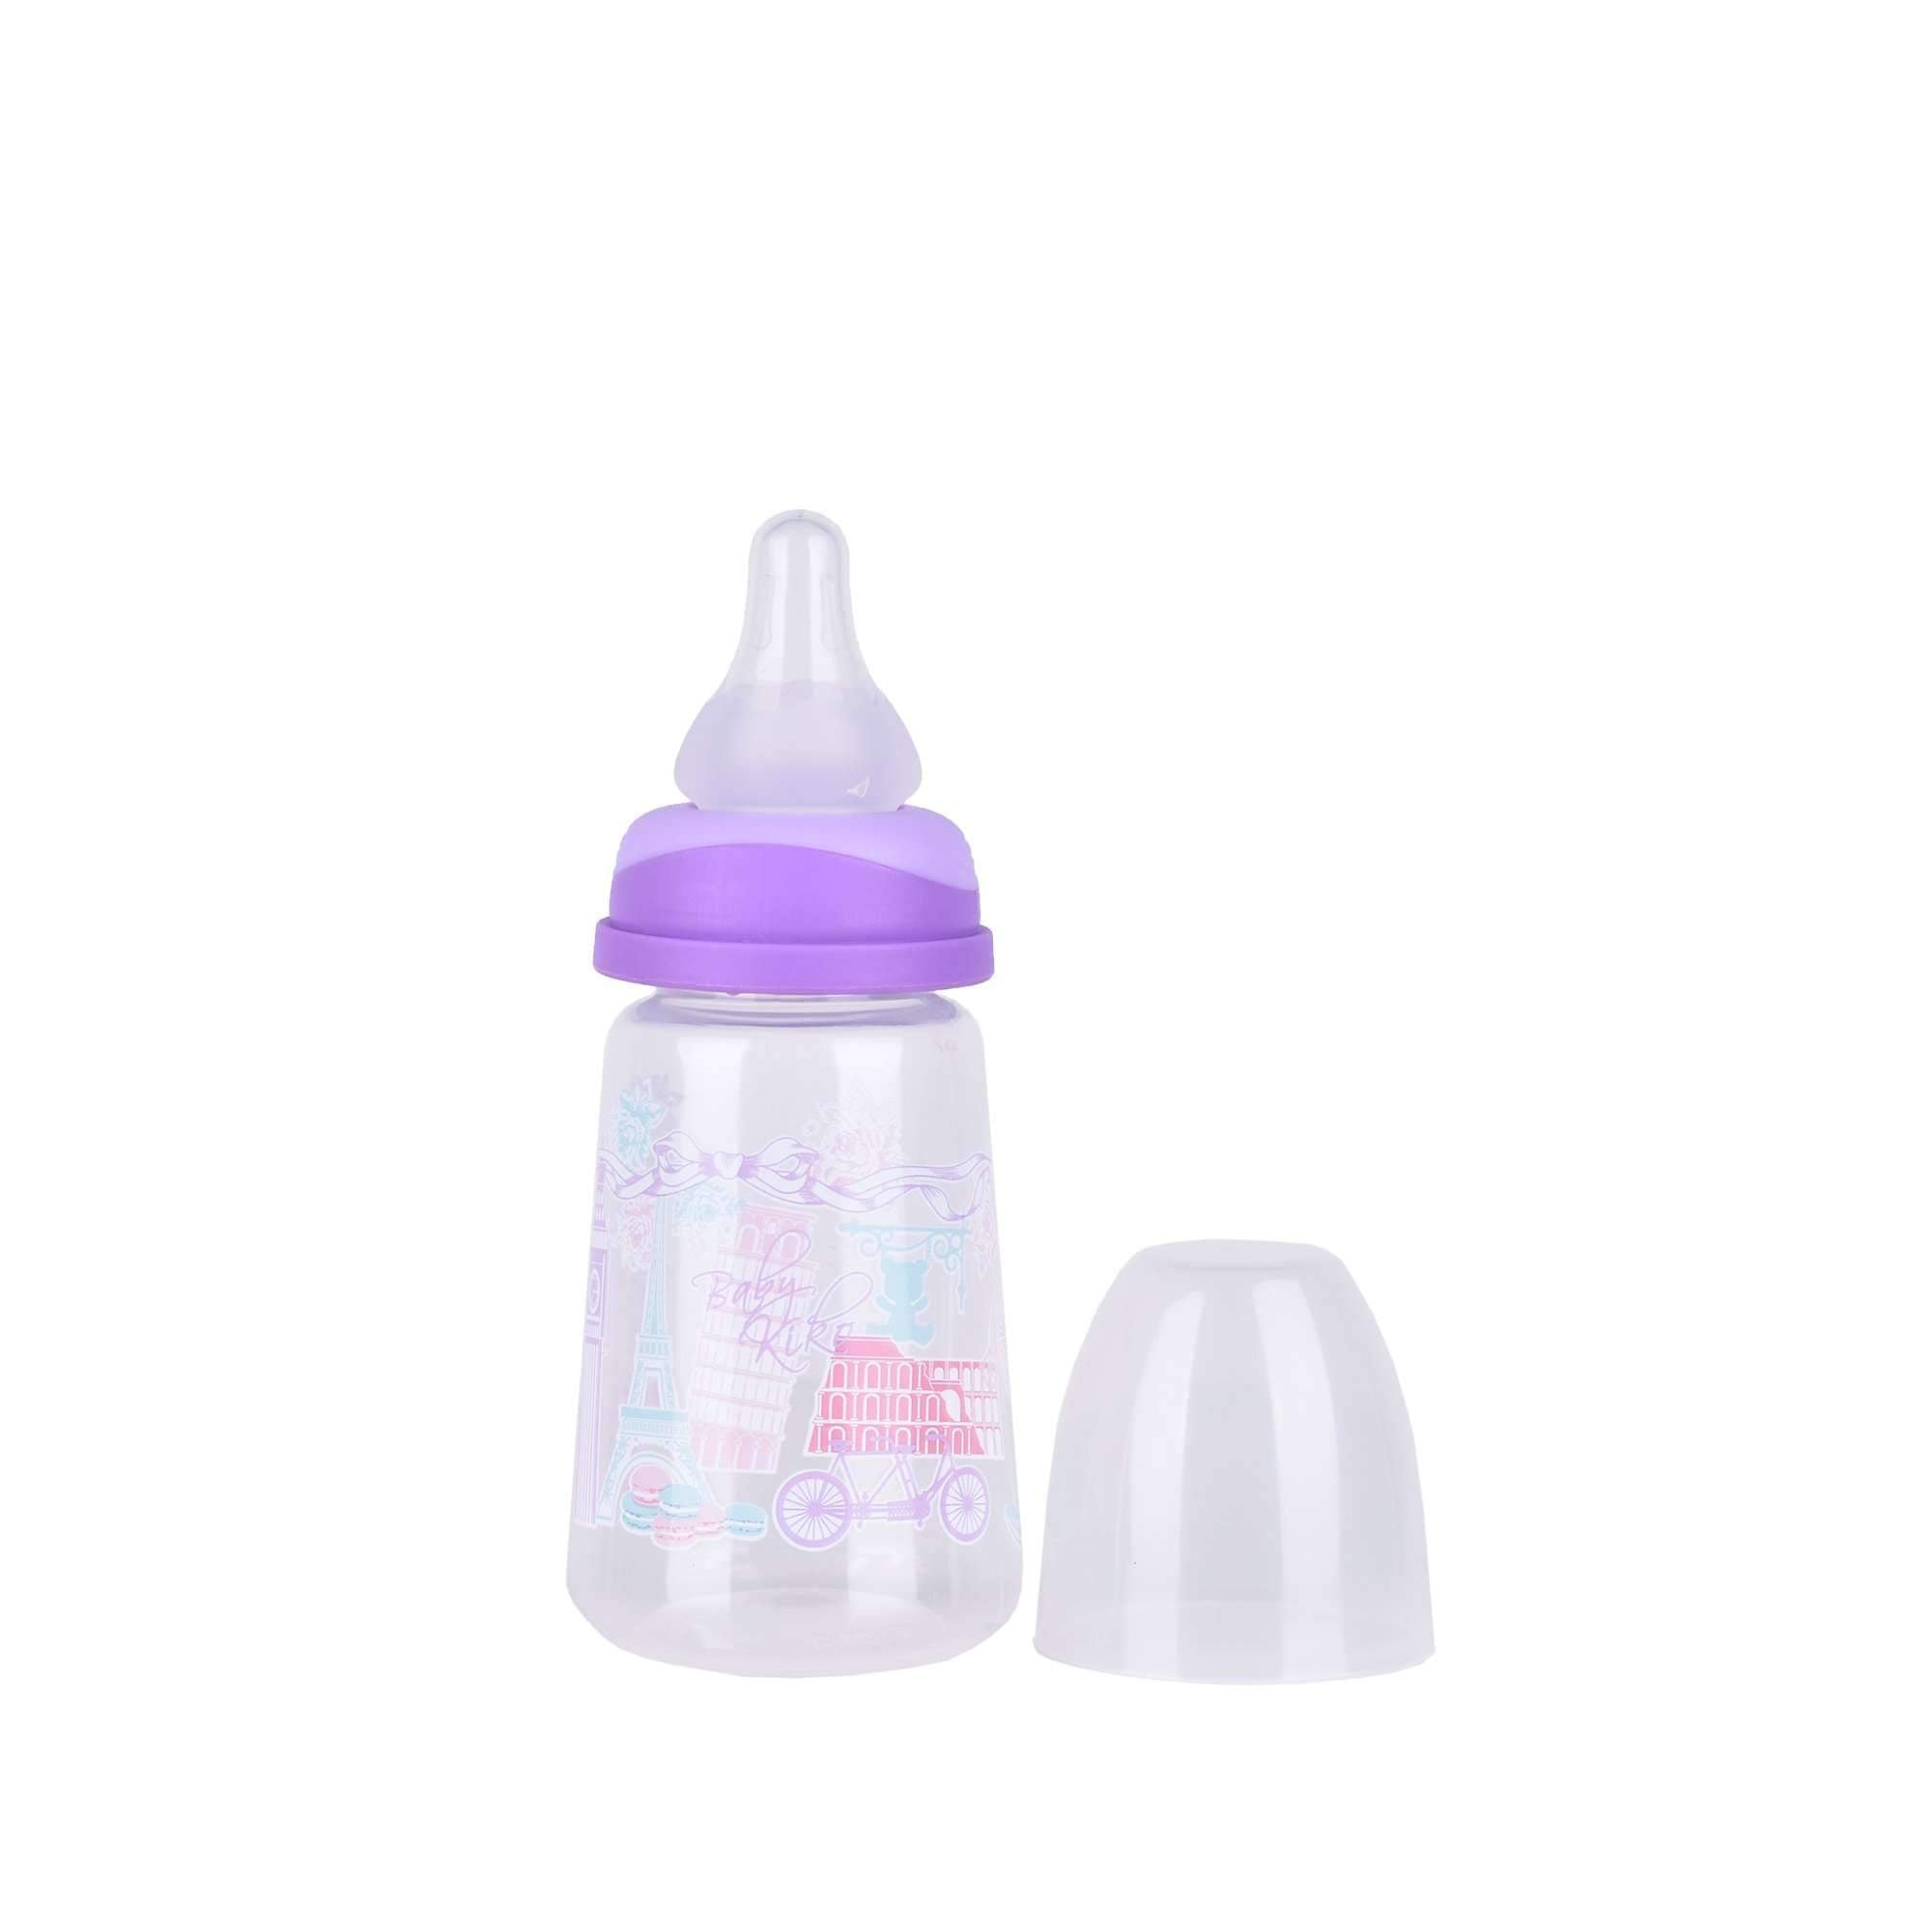 Baby KIKO 4oz Std Neck Bottle 3500-022 : Buy Baby KIKO online at CMG.MY